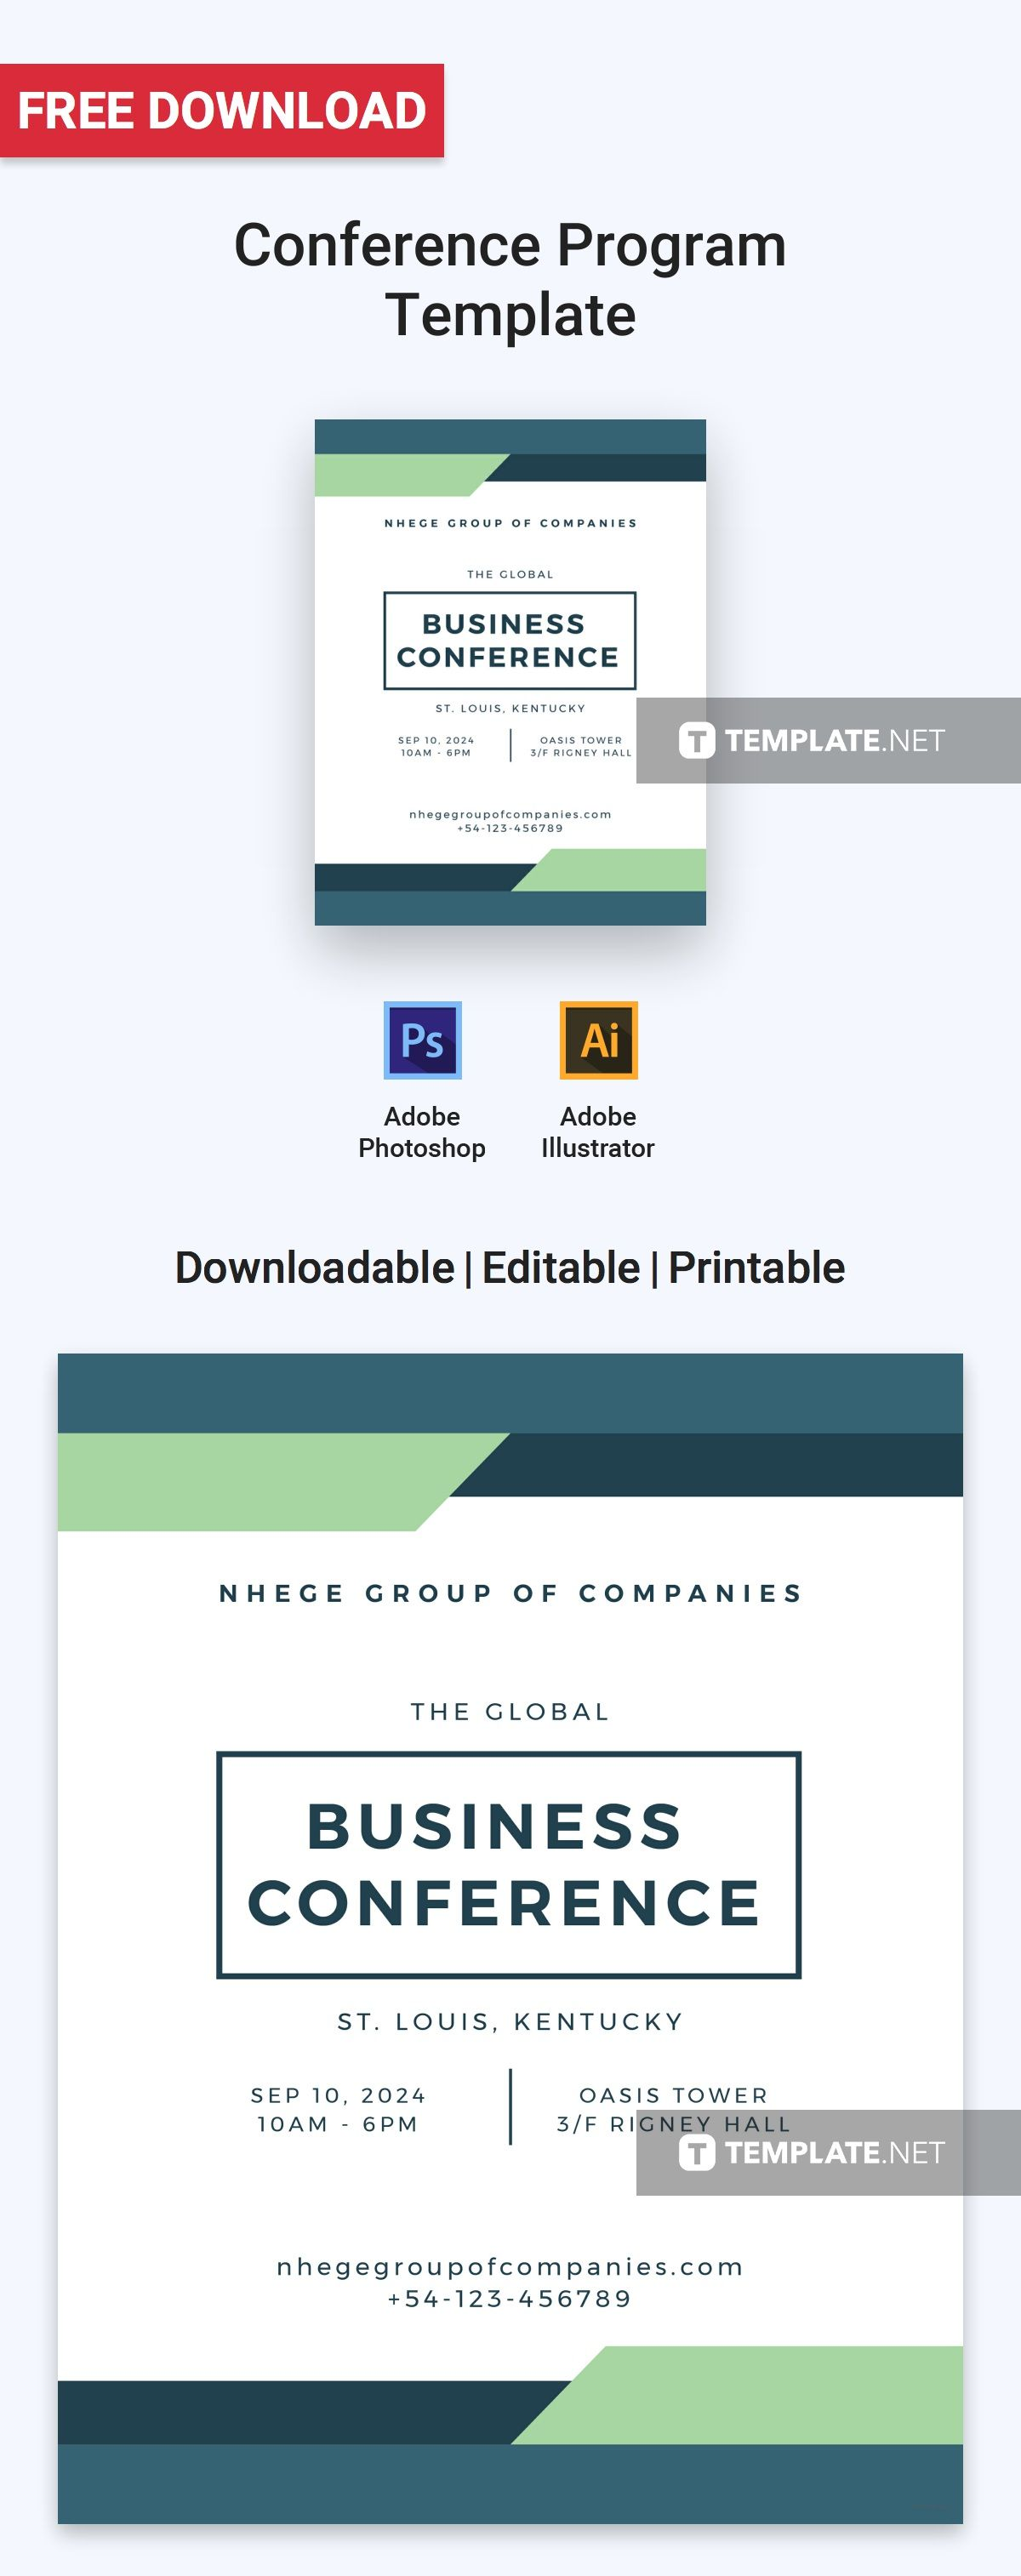 Free conference program program template template and photoshop download free conference program template for personal business use professionally designed free program templates maxwellsz